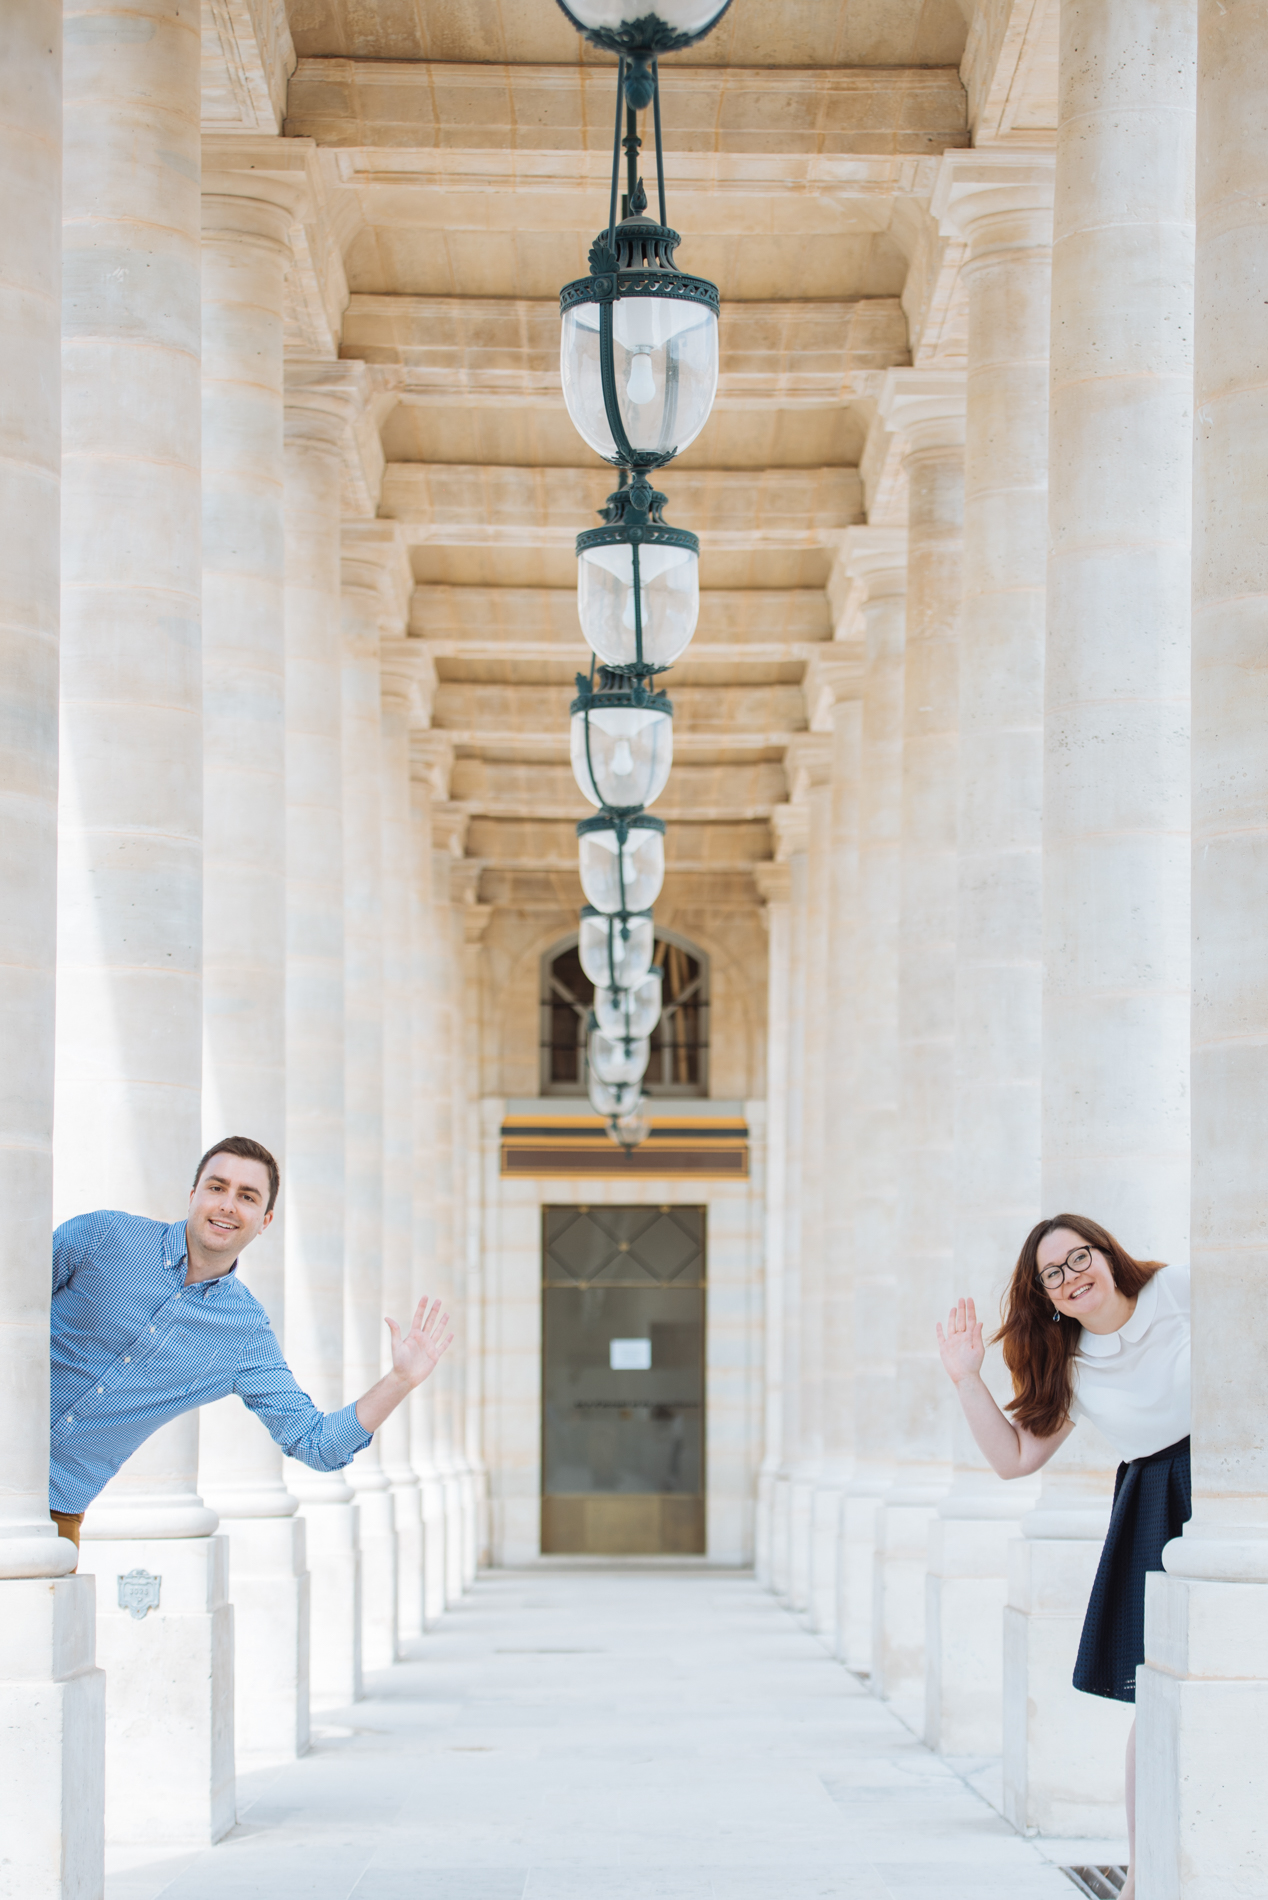 seance-engagement-paris-maldeme-photographe-palais royal-16